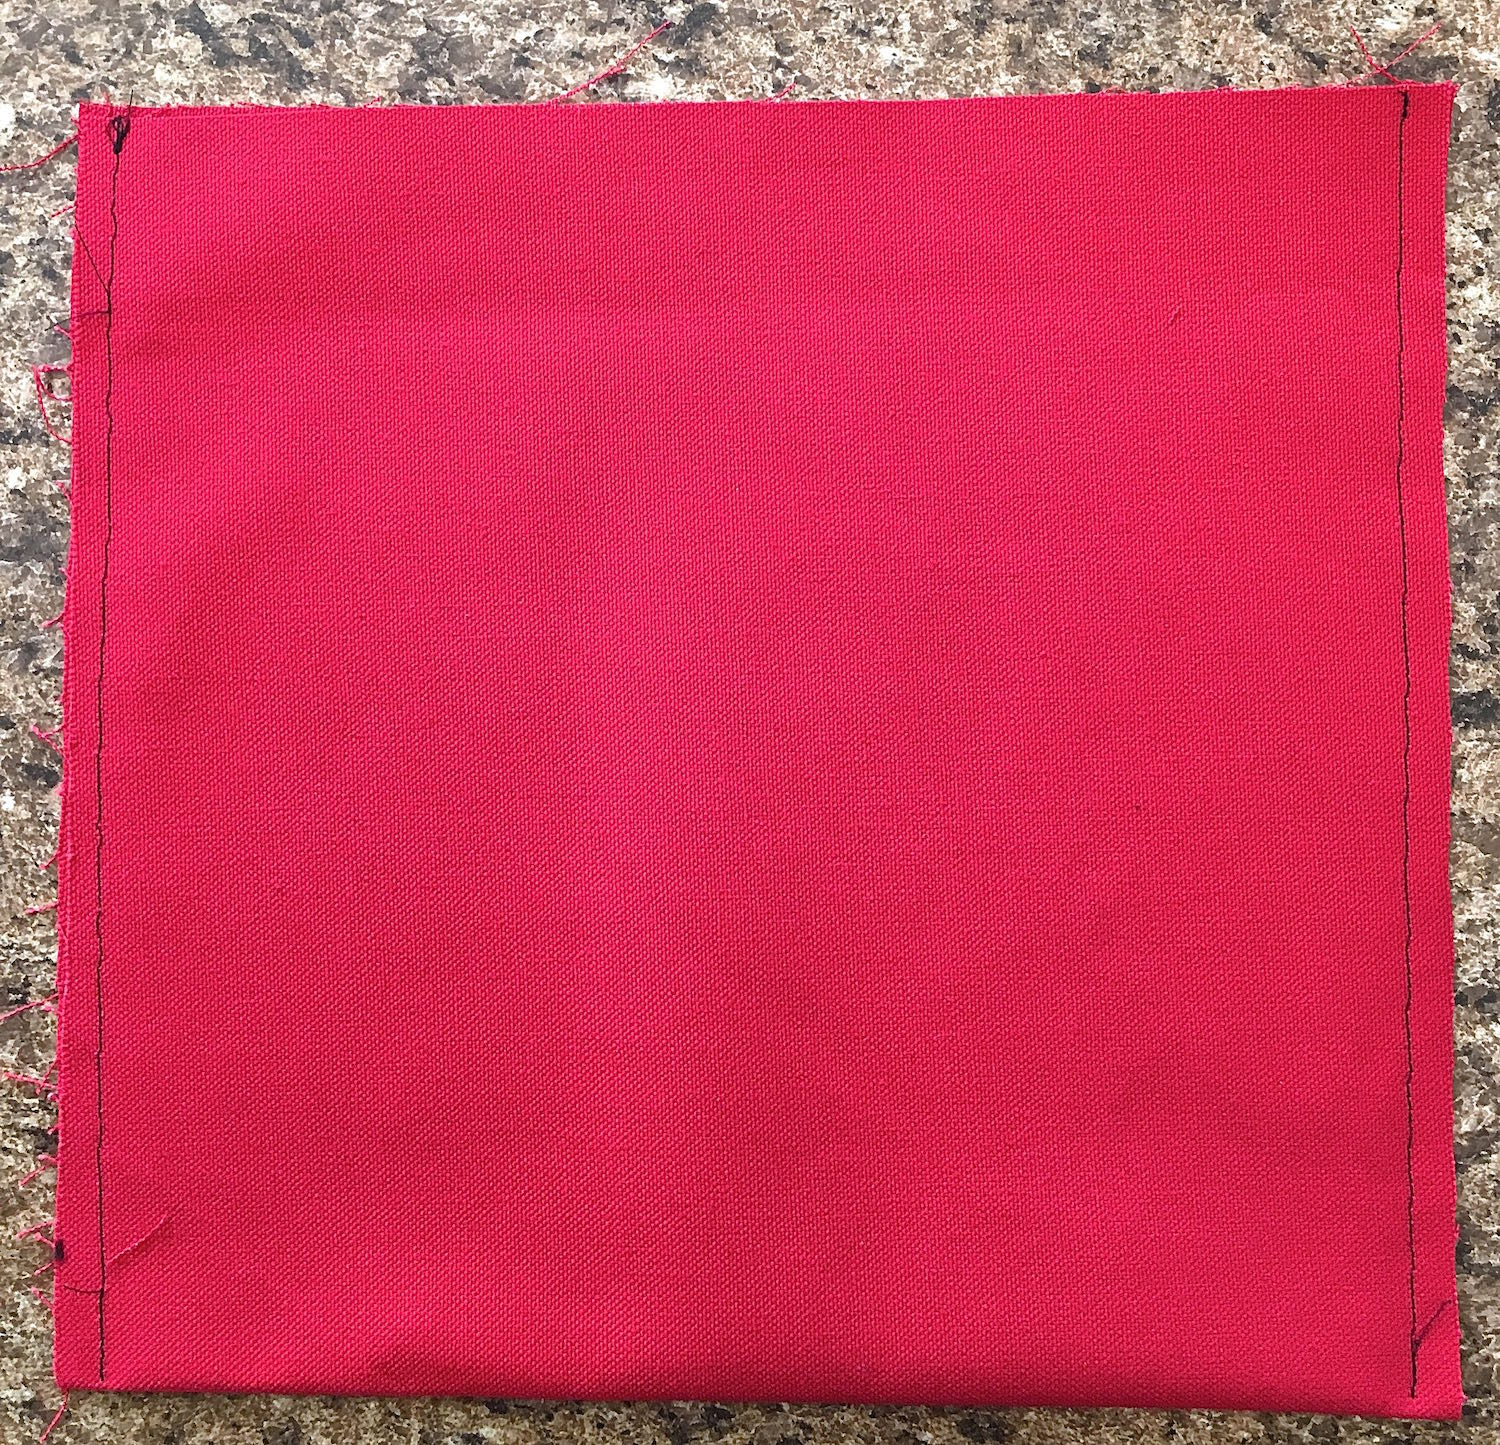 """step 12 -  Pocket  With the fabric right sides facing each other, fold the pocket piece in half to measure 10"""" x 10"""". Stitch the sides with .25"""" seams. Turn the fabric right side out and press the seams."""